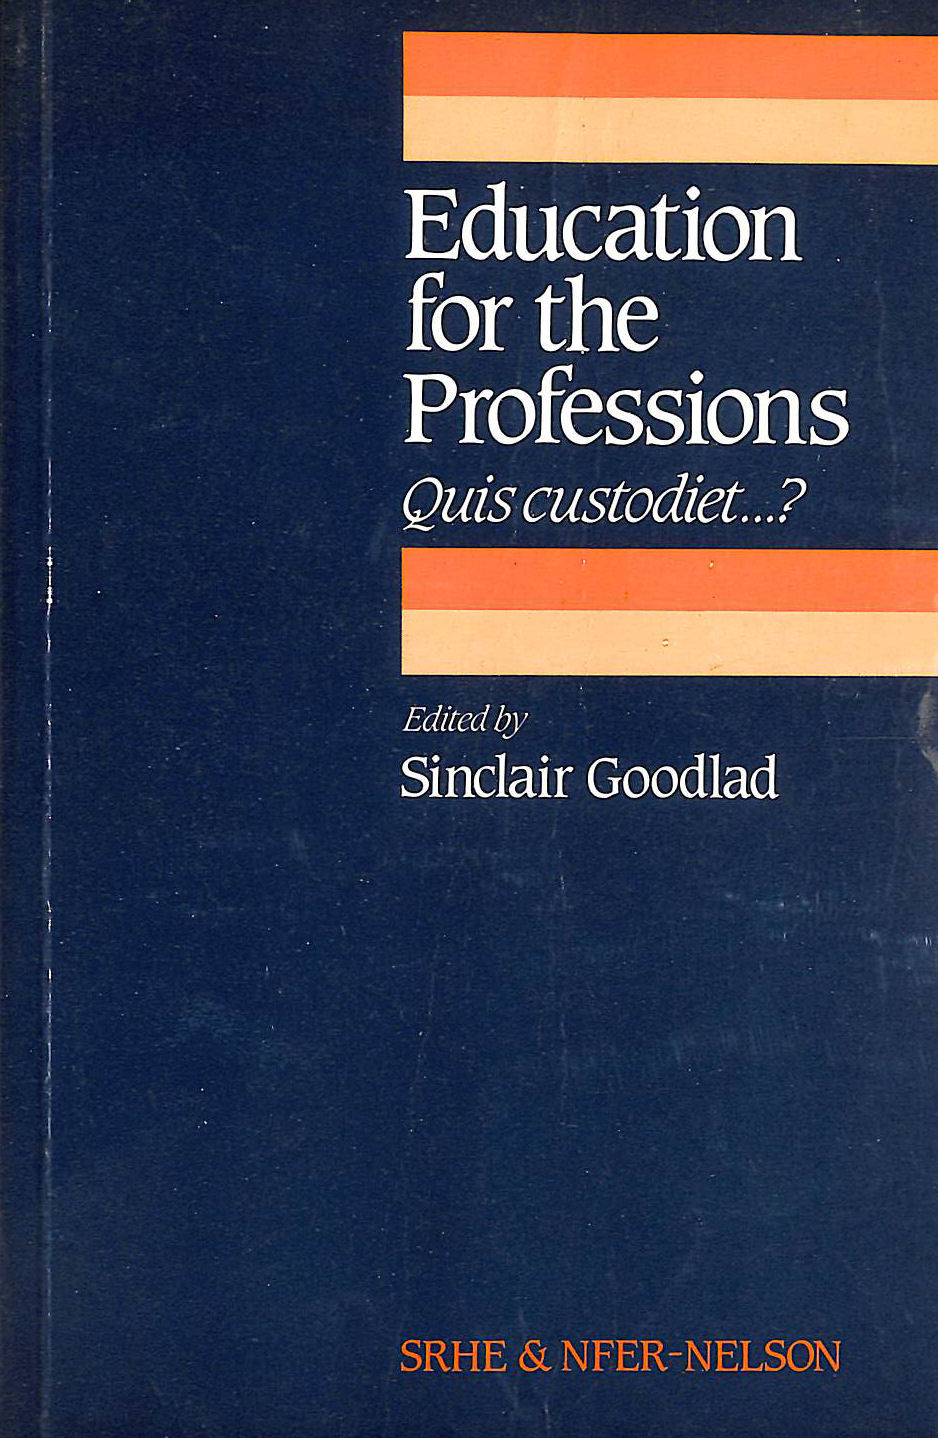 Image for Education for the Professions